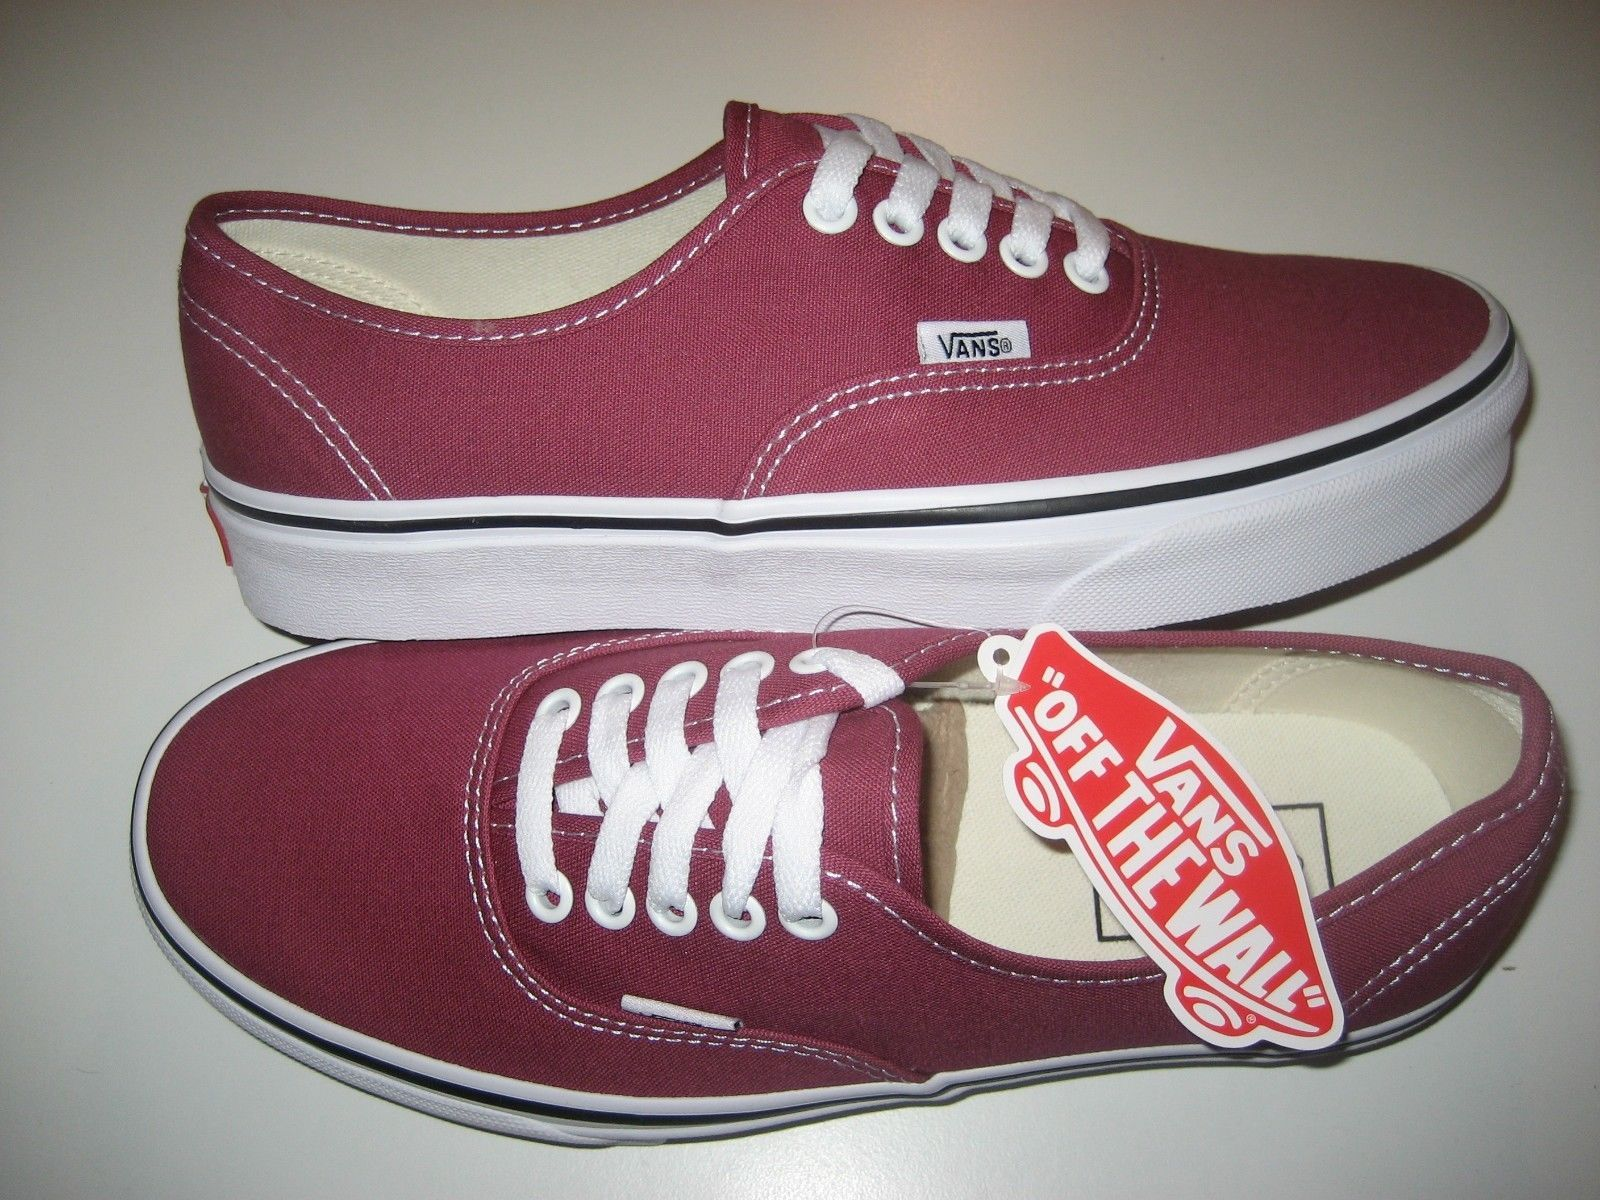 Vans Authentic Mens Dry Rose True White canvas Skate Boat shoes Size 8 NWT